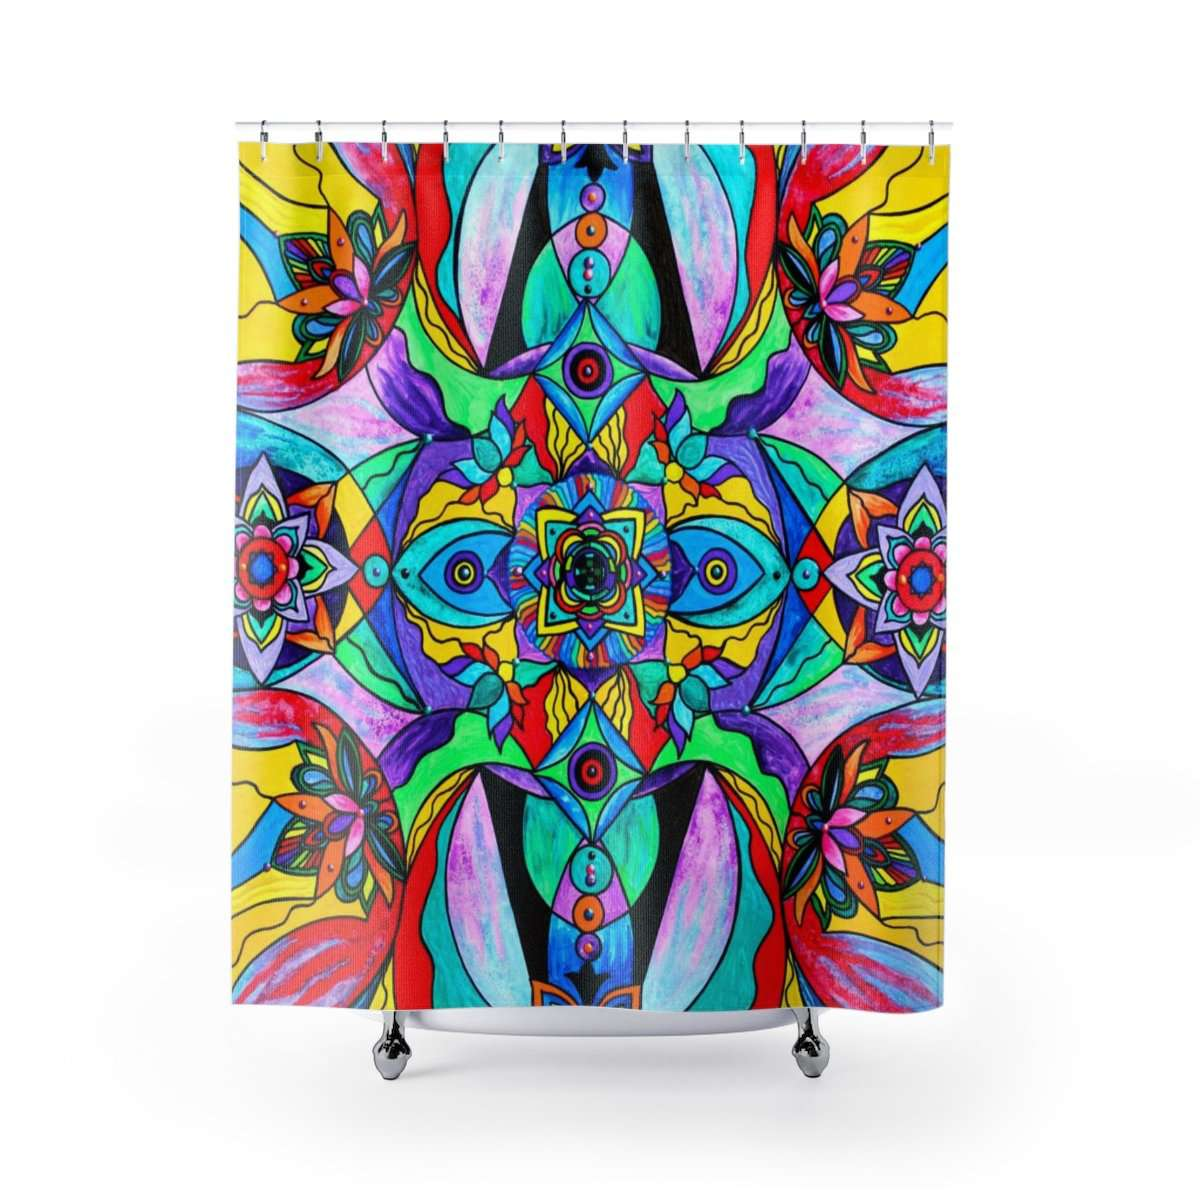 Receive - Shower Curtains